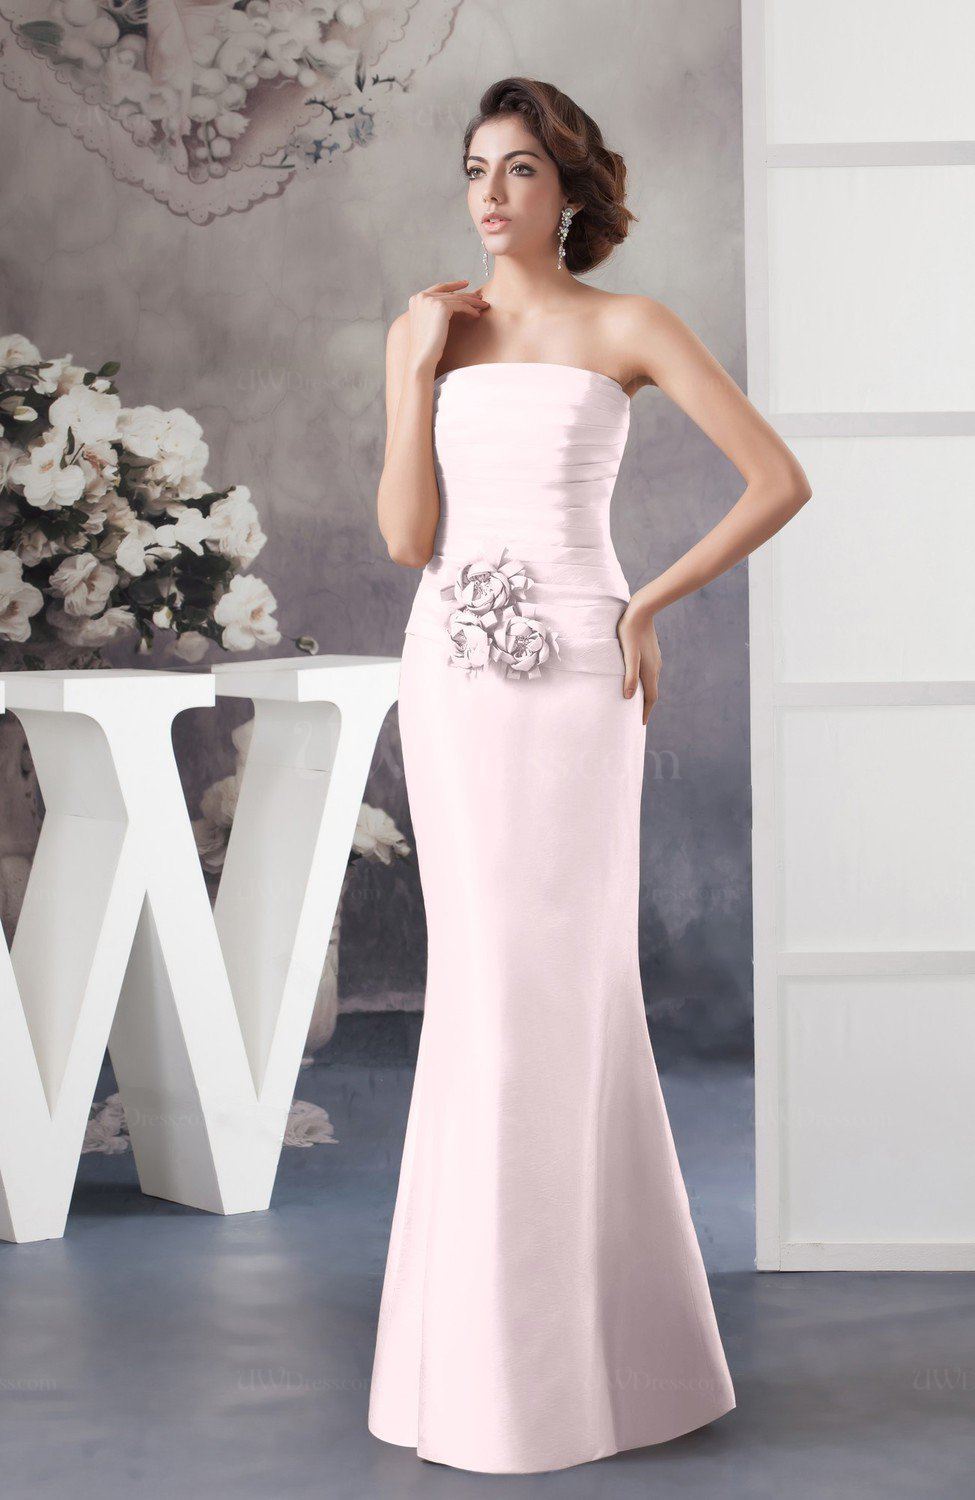 Blush Affordable Bridesmaid Dress Inexpensive Taffeta